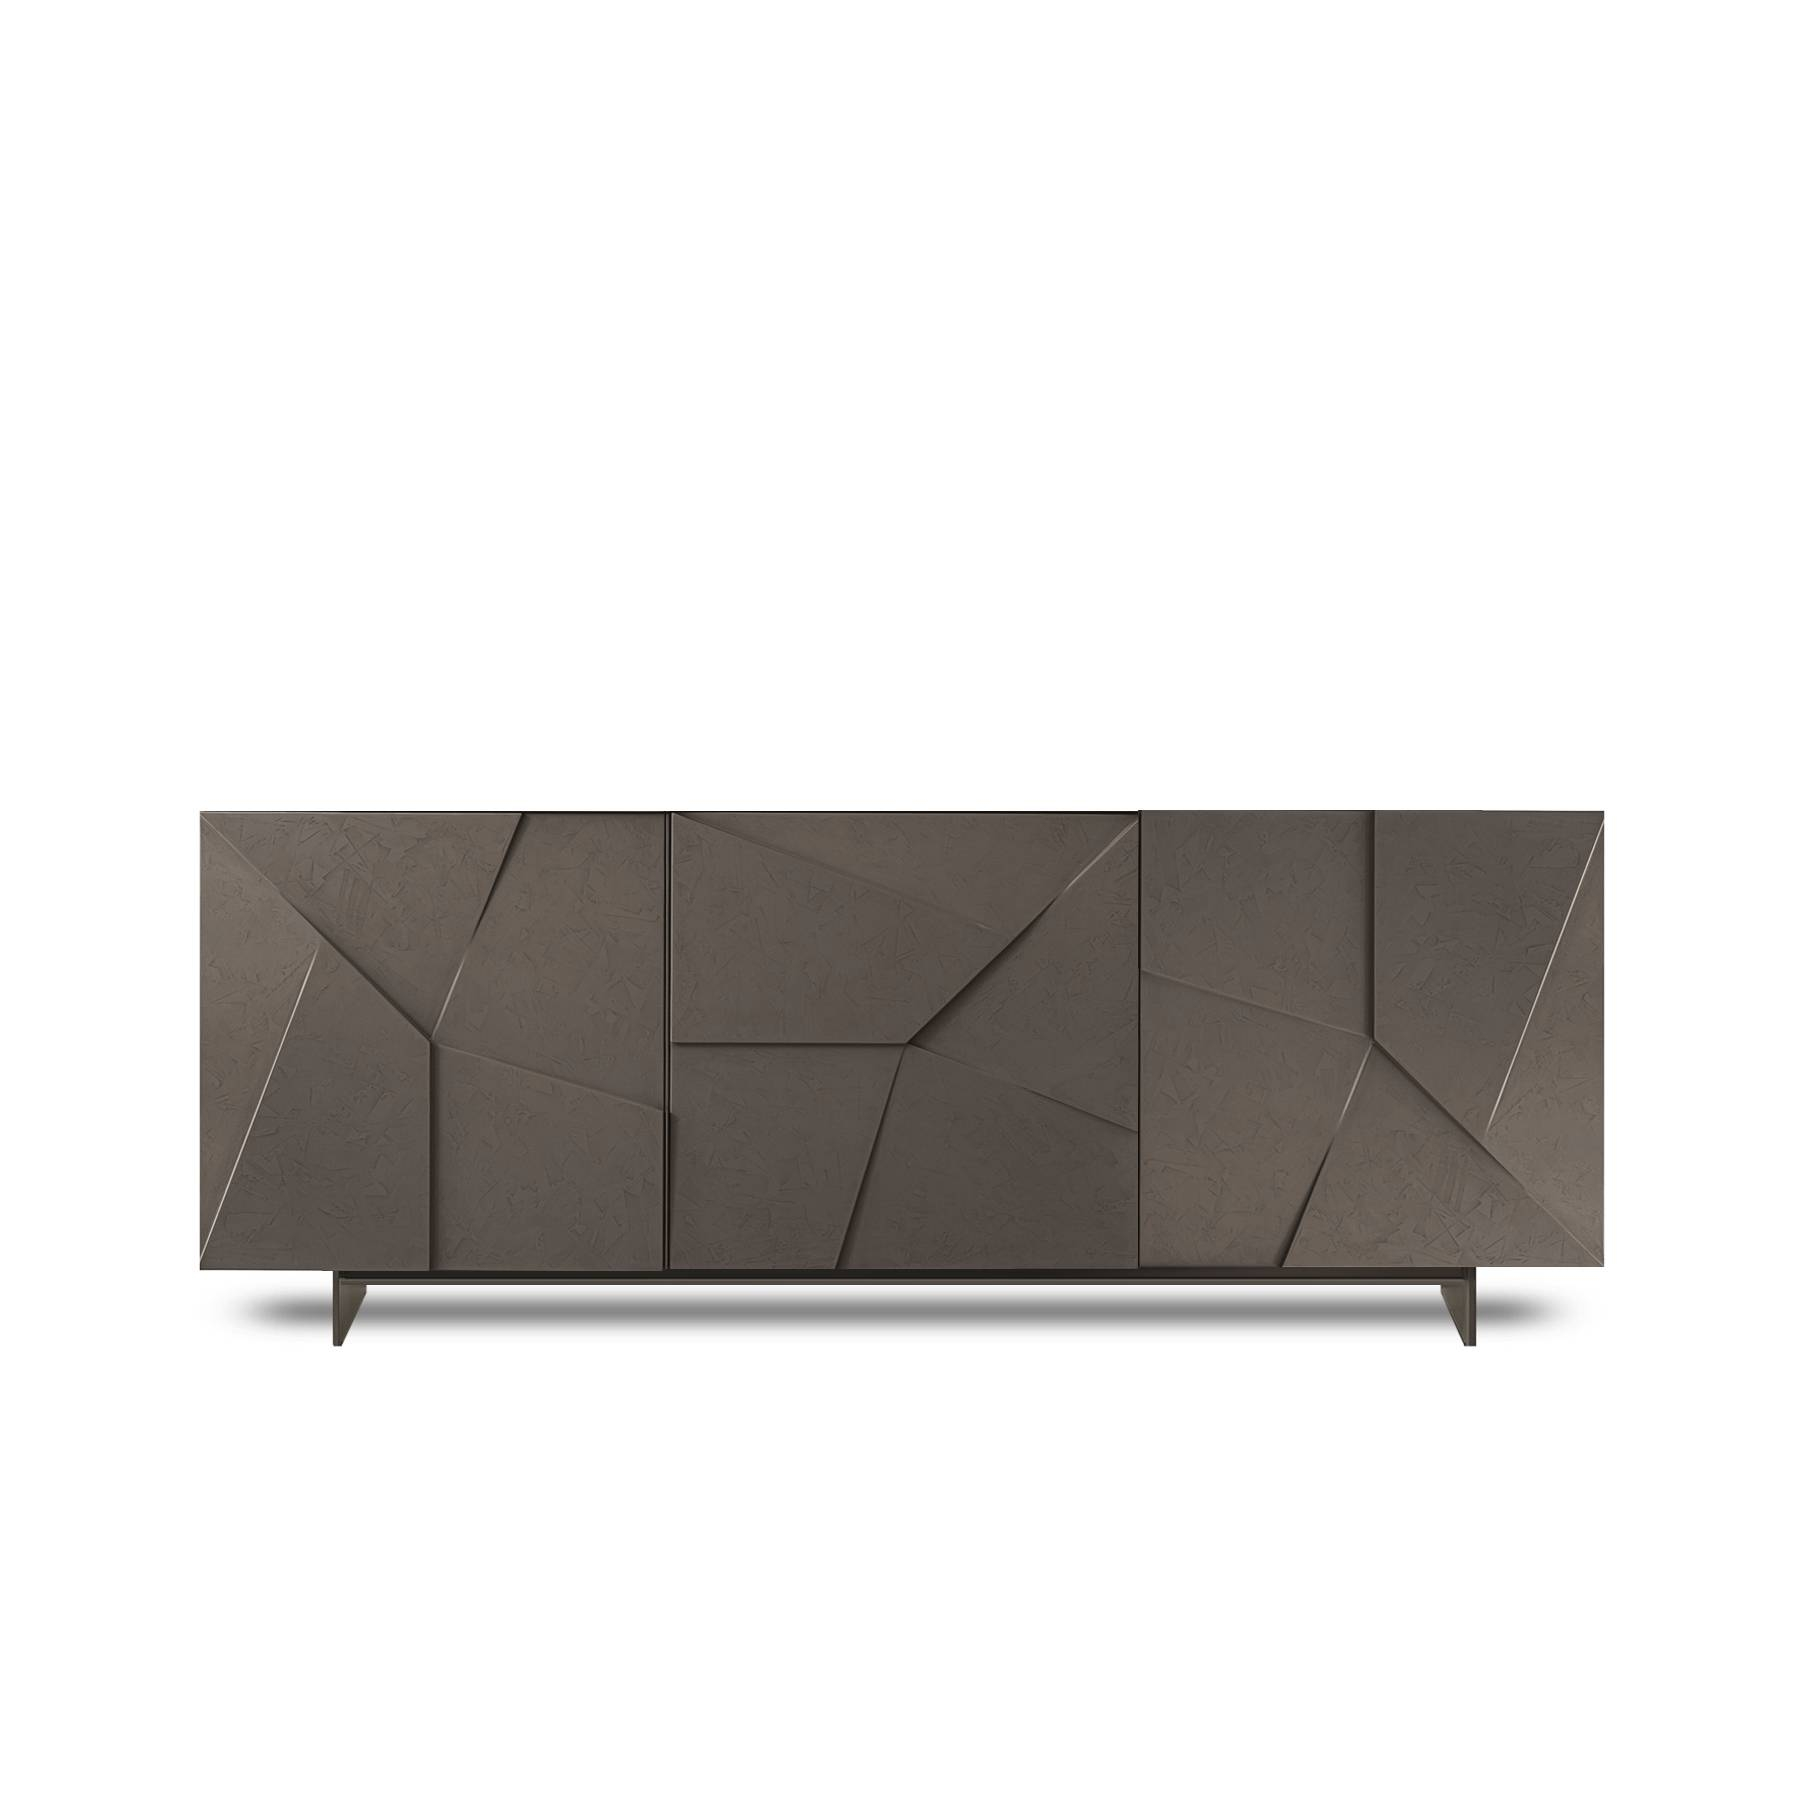 Modern Contemporary Sideboards, Storage Units My Italian Living Ltd Pertaining To Contemporary Sideboards (#9 of 20)